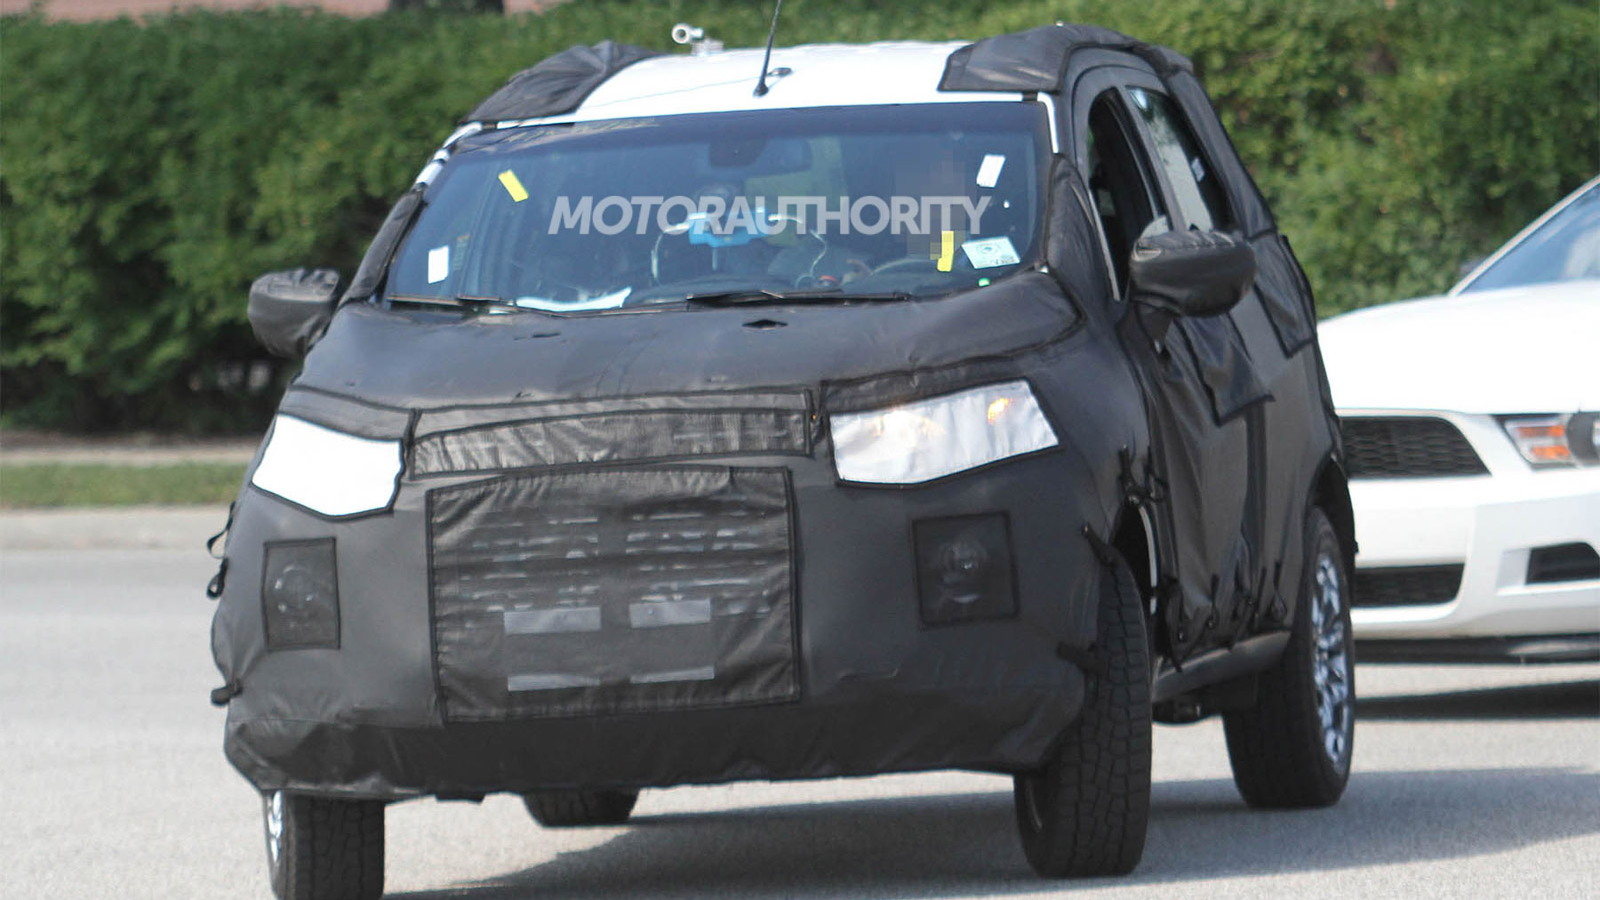 Ford Fiesta-based crossover spy shots